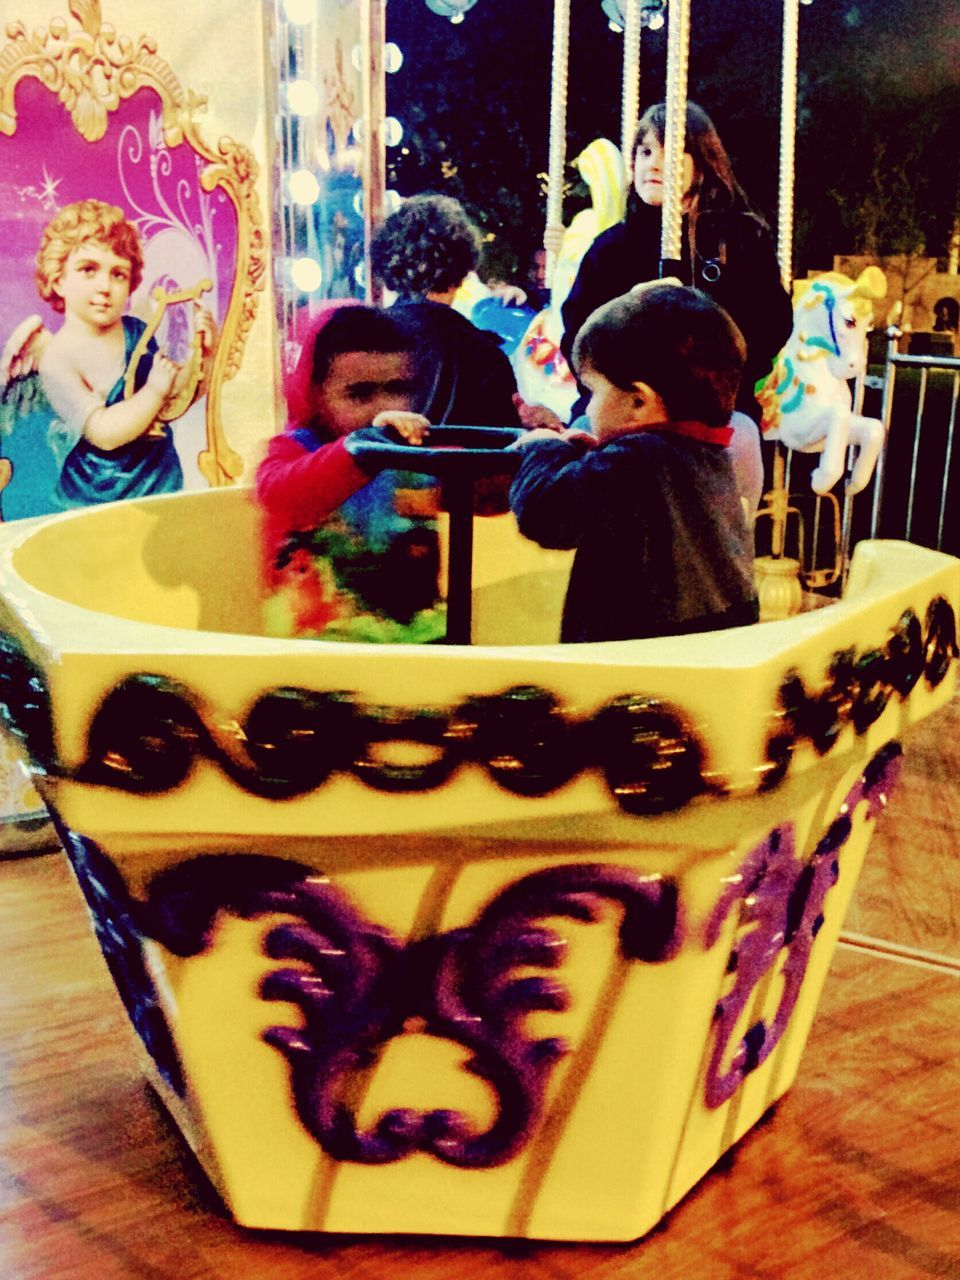 childhood, real people, leisure activity, boys, amusement park, lifestyles, two people, fun, full length, enjoyment, girls, indoors, sitting, day, togetherness, carousel, close-up, people